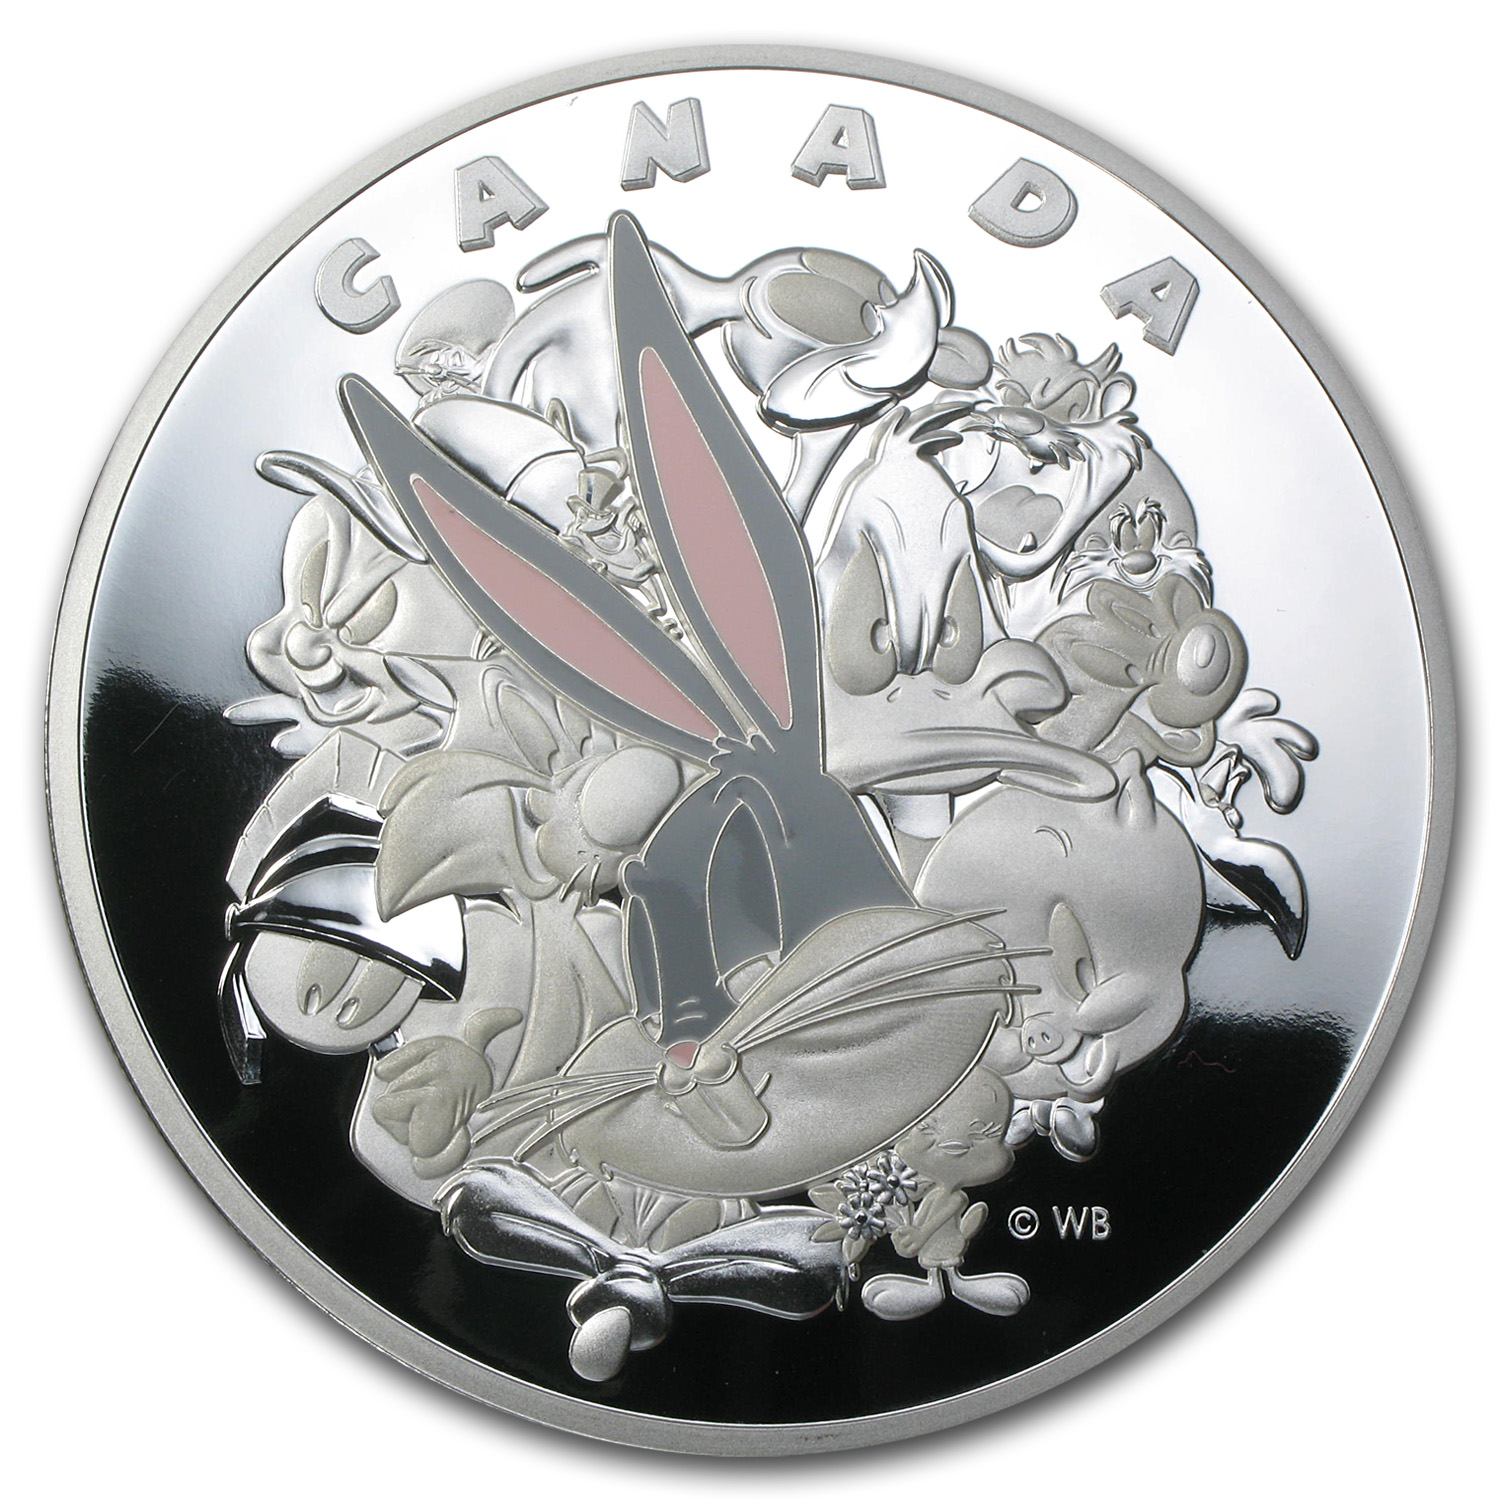 2015 Canada 1 Kilo Silver $250 Looney Tunes Ensemble Cast